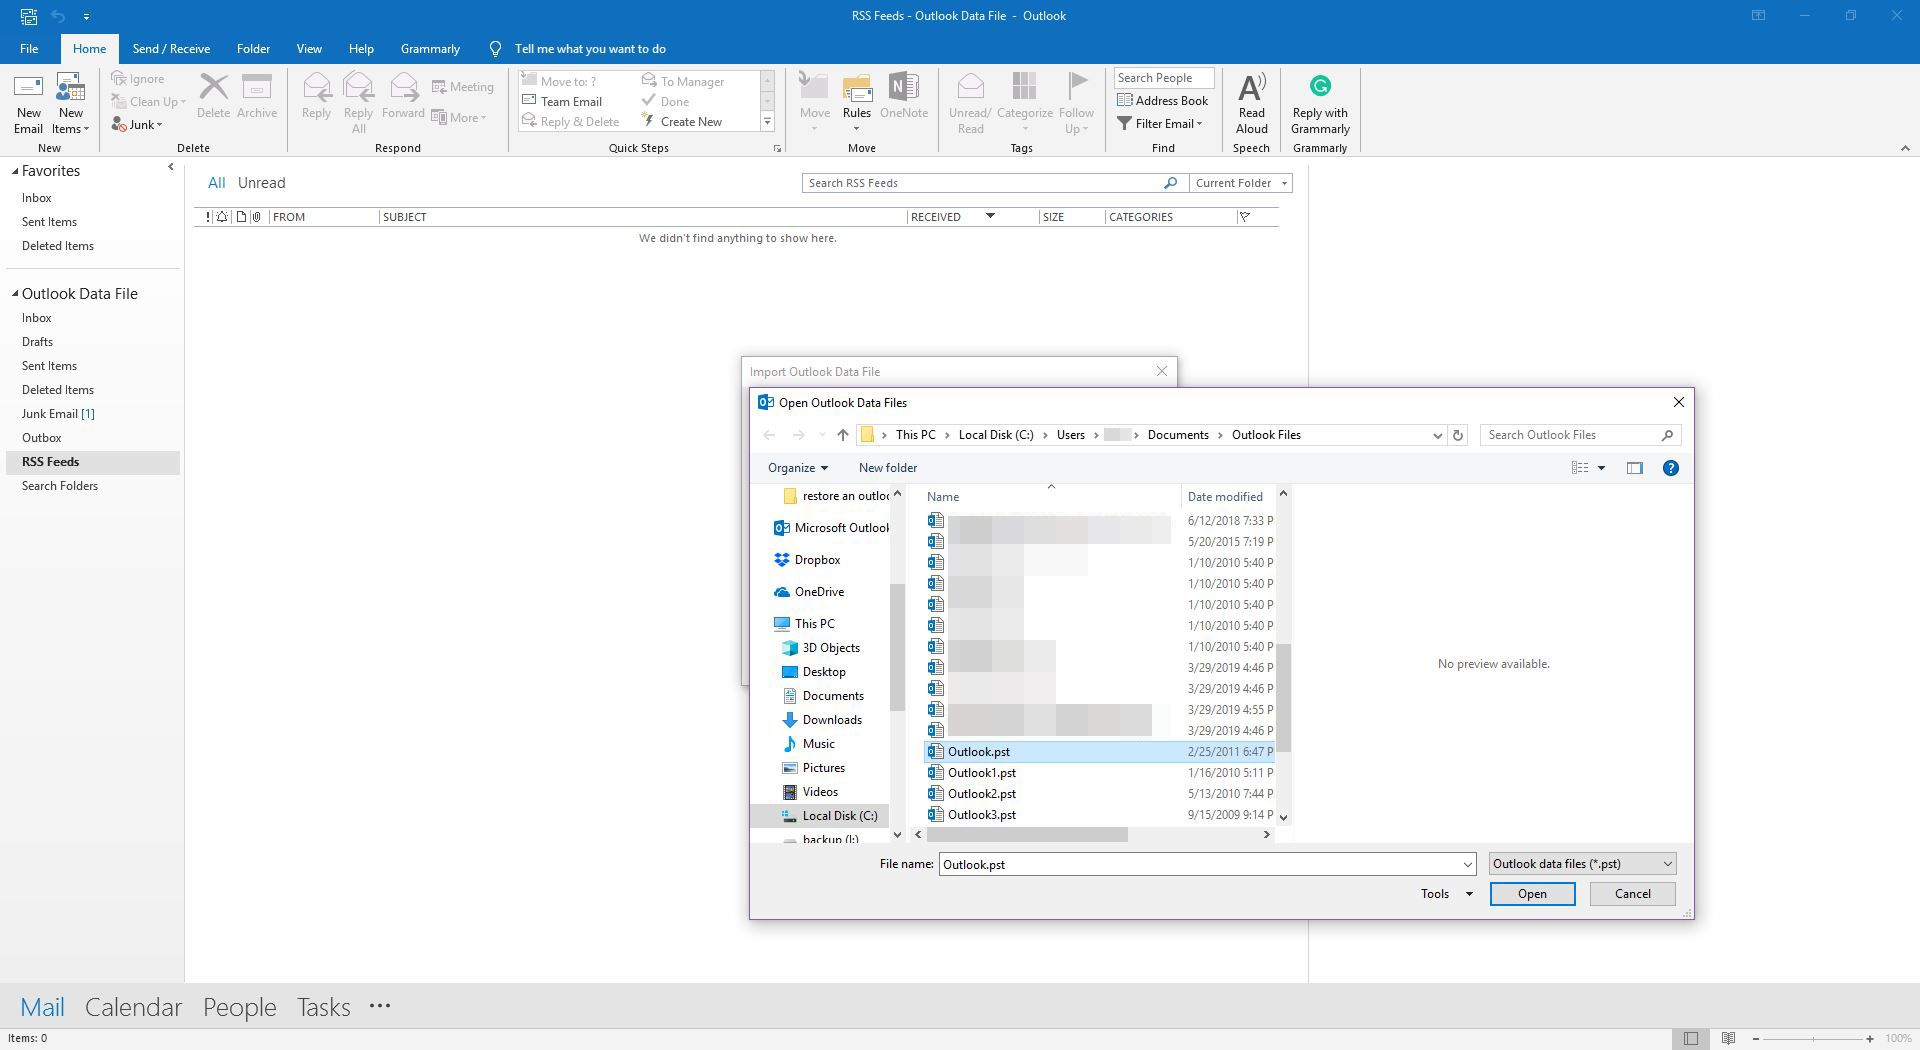 How to Restore Outlook Email, Contacts and Other Data